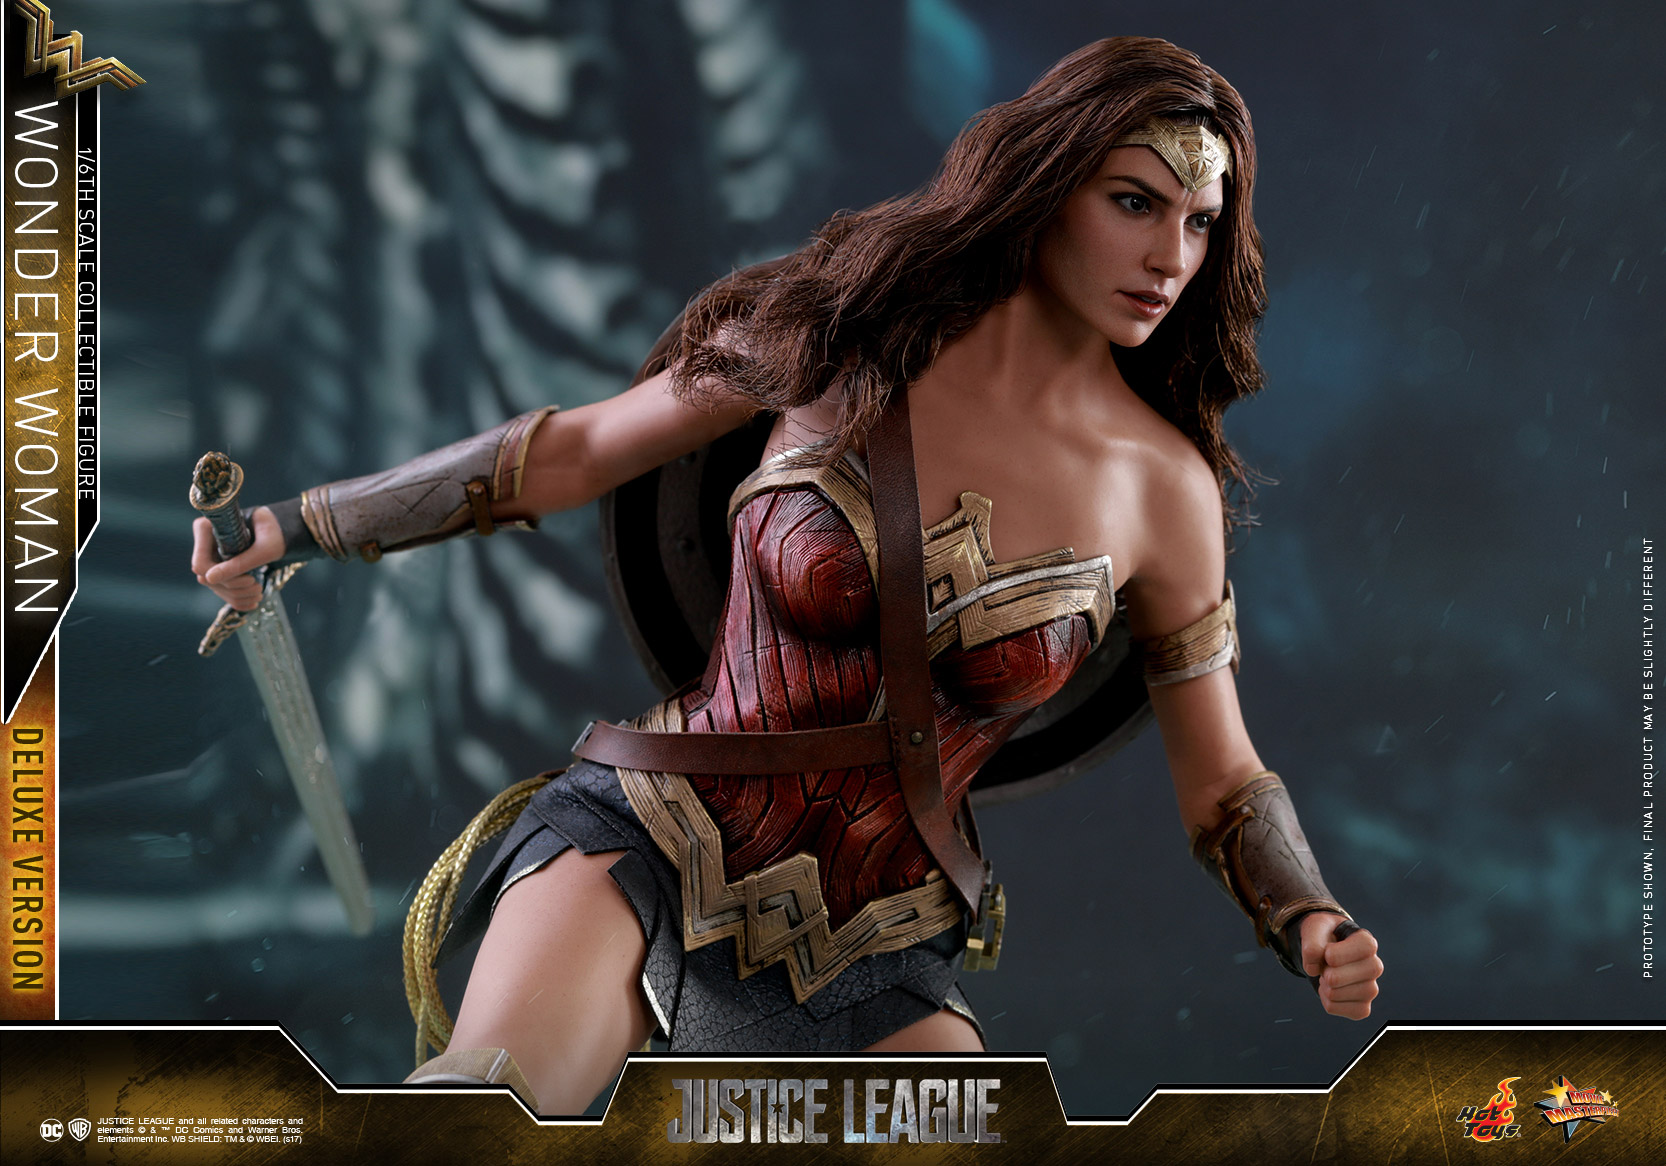 Hot-Toys-Justice-League-Wonder-Woman-collectible-figure-Deluxe_PR-18.jpg